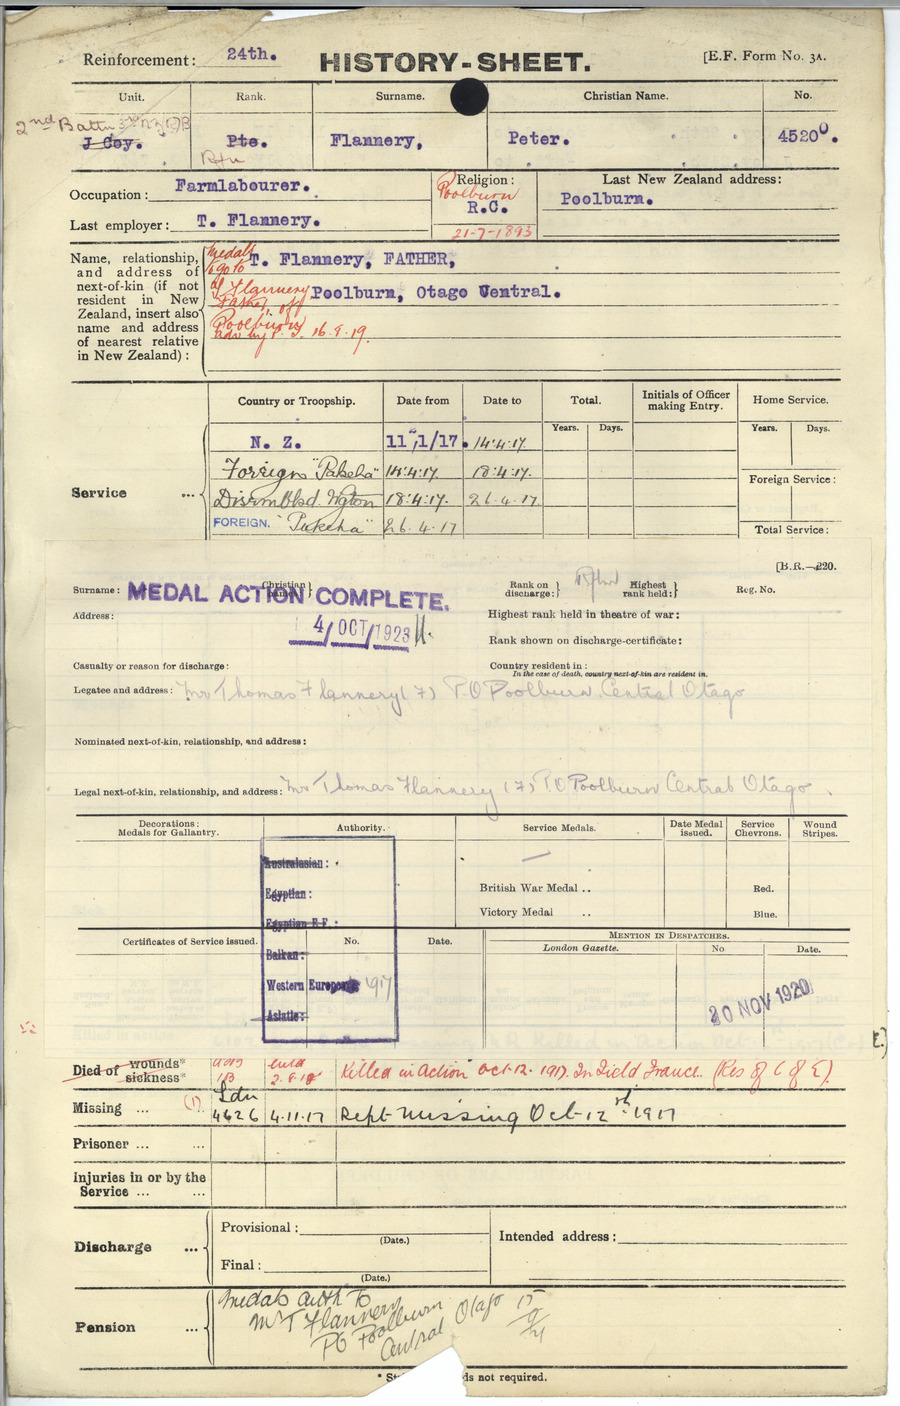 FLANNERY, Peter - WW1 45200 - Army